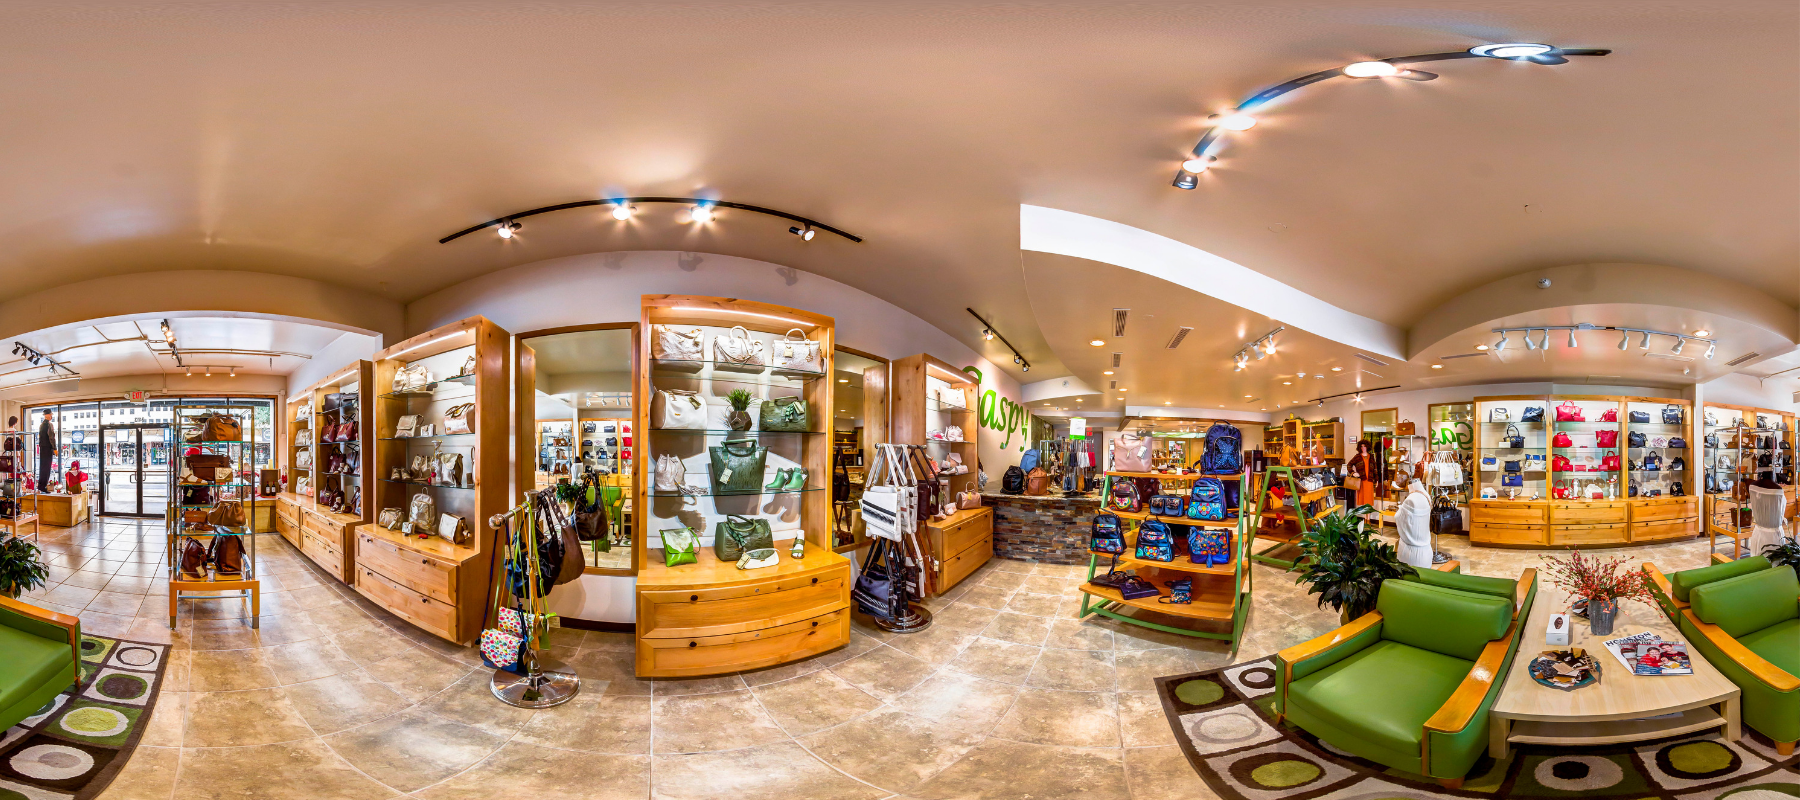 Join us for a Virtual Tour of our Storefront in Rice Village!